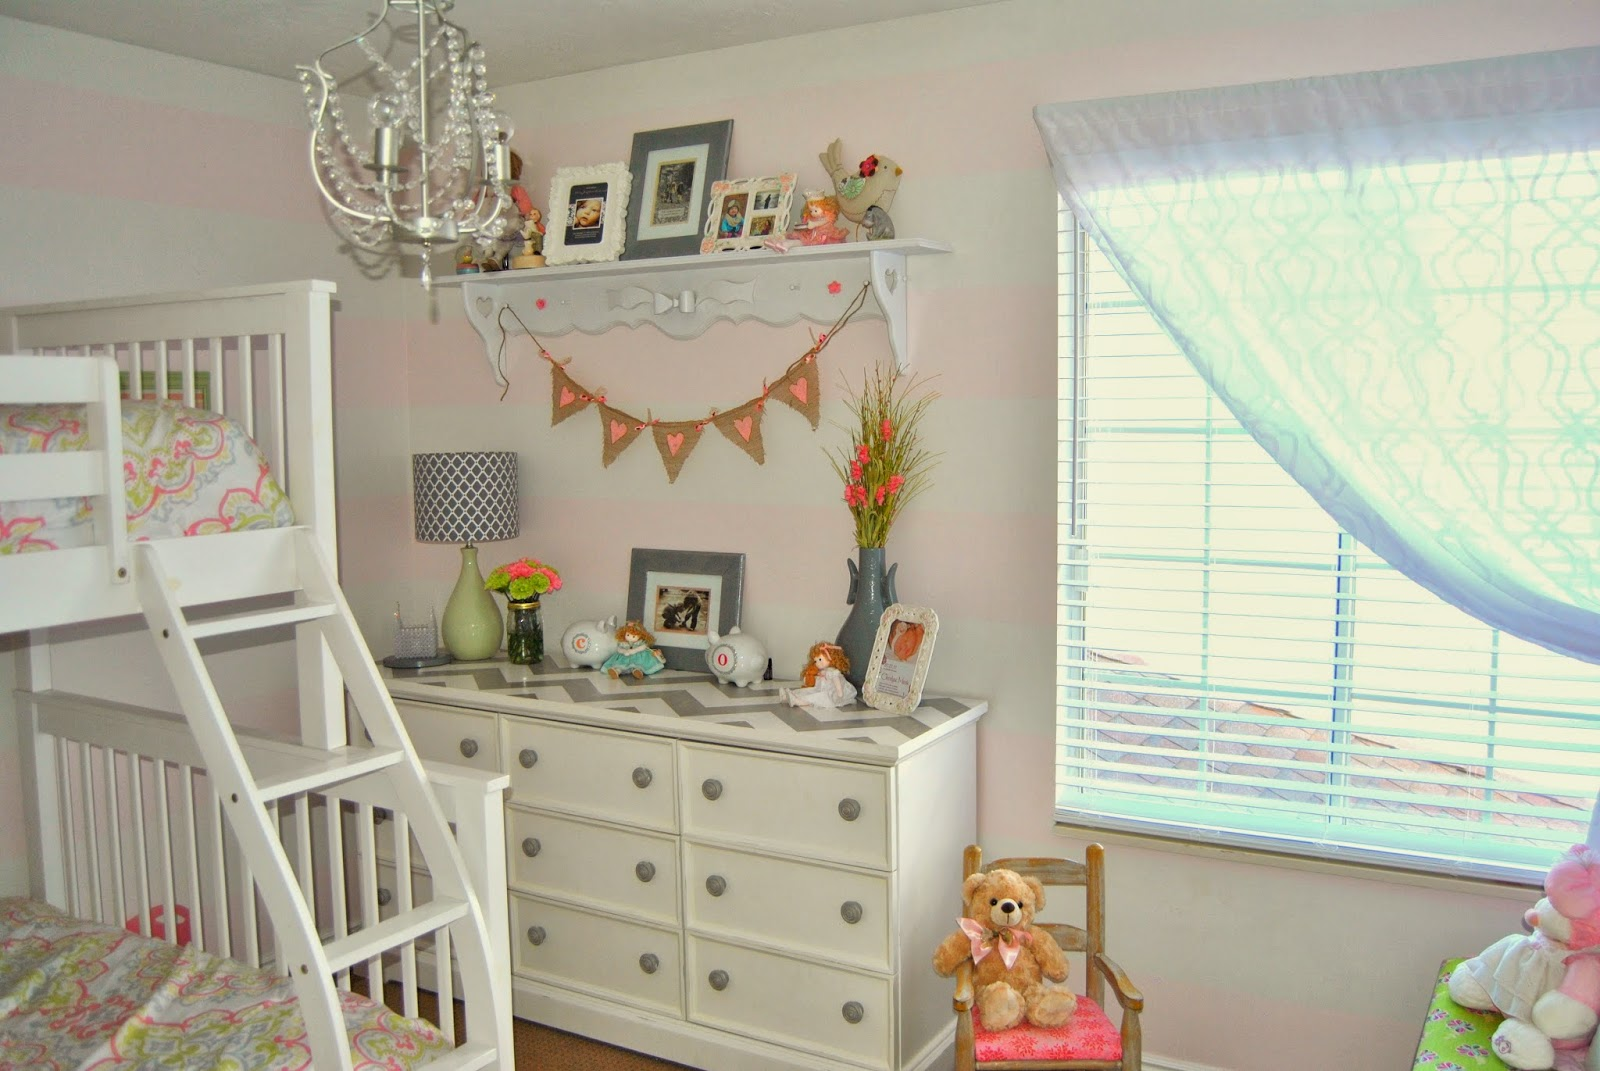 pink, gray, horizontal stripes, stripes, paint, graphic prints, girly, bunkbed, bunk bed, white bunk bed, stencil, lamp, medallion print, medallion, pink, watermelon, green, stacked pillows, bedroom, little girl, little girls room, shared room, floating shelf, shelf, chandelier, ikea, homegoods, chevron, dresser, white dresser, diy, sheer curtain, toy box, window seat, interior design, interiors, studio 7 interior desgin, blogger, blogging, designer, design, airy, fresh, target, hobby lobby, tjmaxx, ross, marshalls